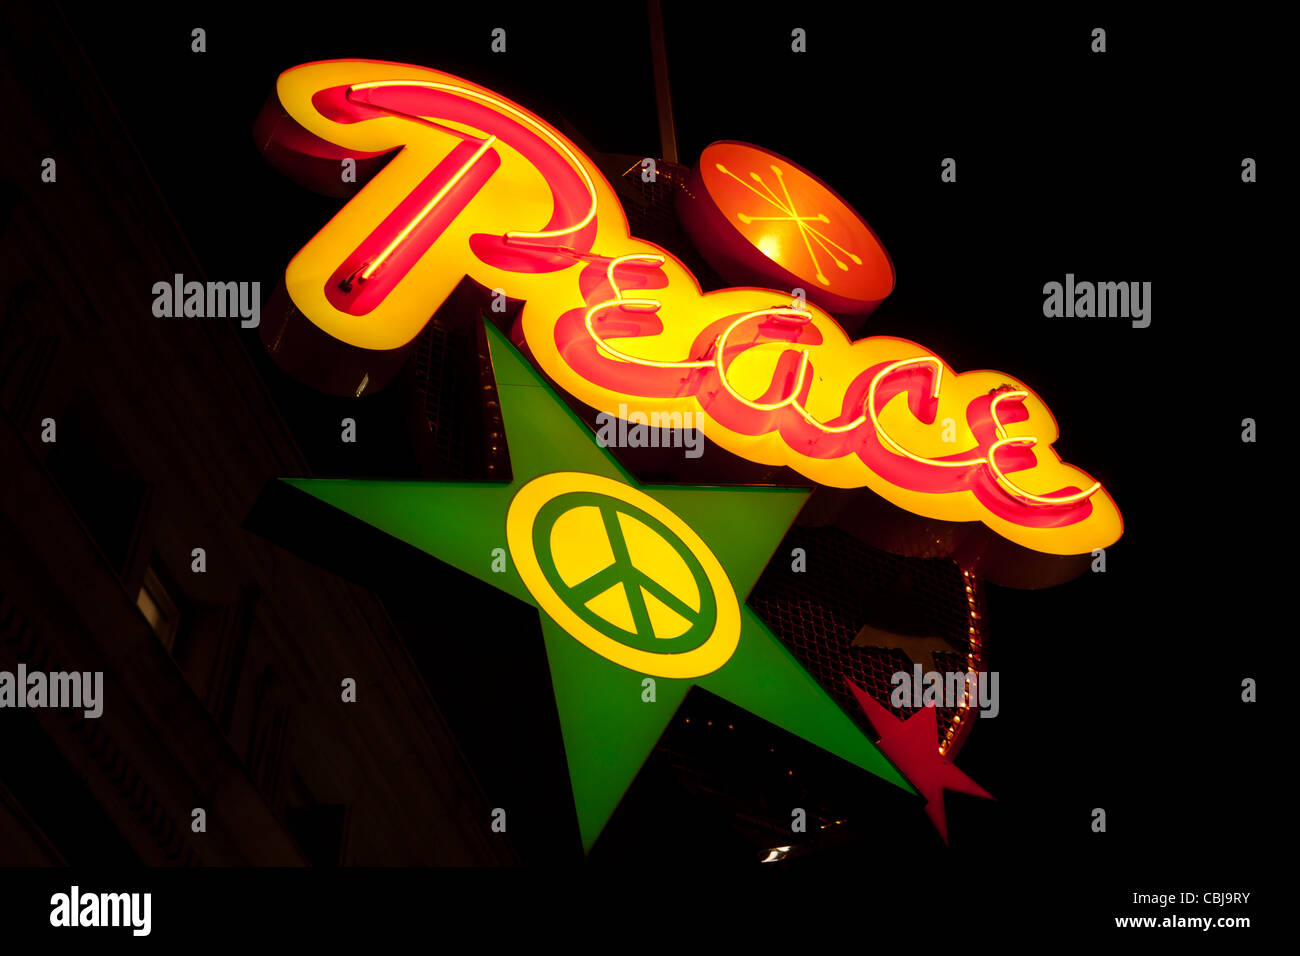 Neon peace sign lit up during Christmas season-Victoria, British Columbia, Canada. - Stock Image